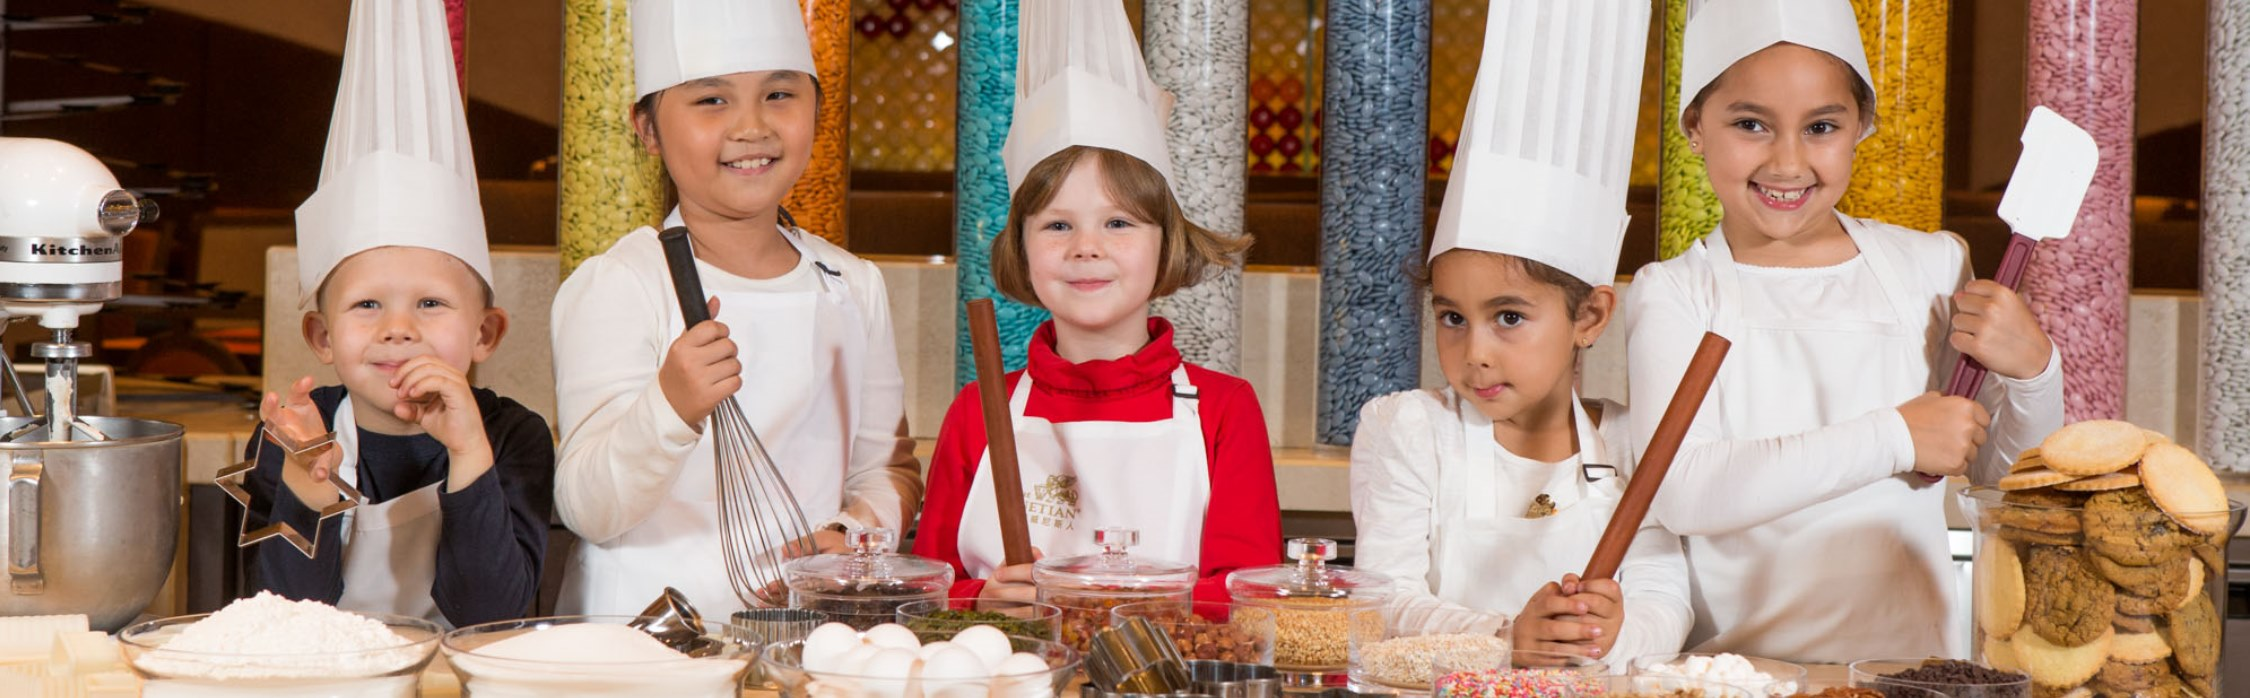 Junior Hotelier - Master Chef